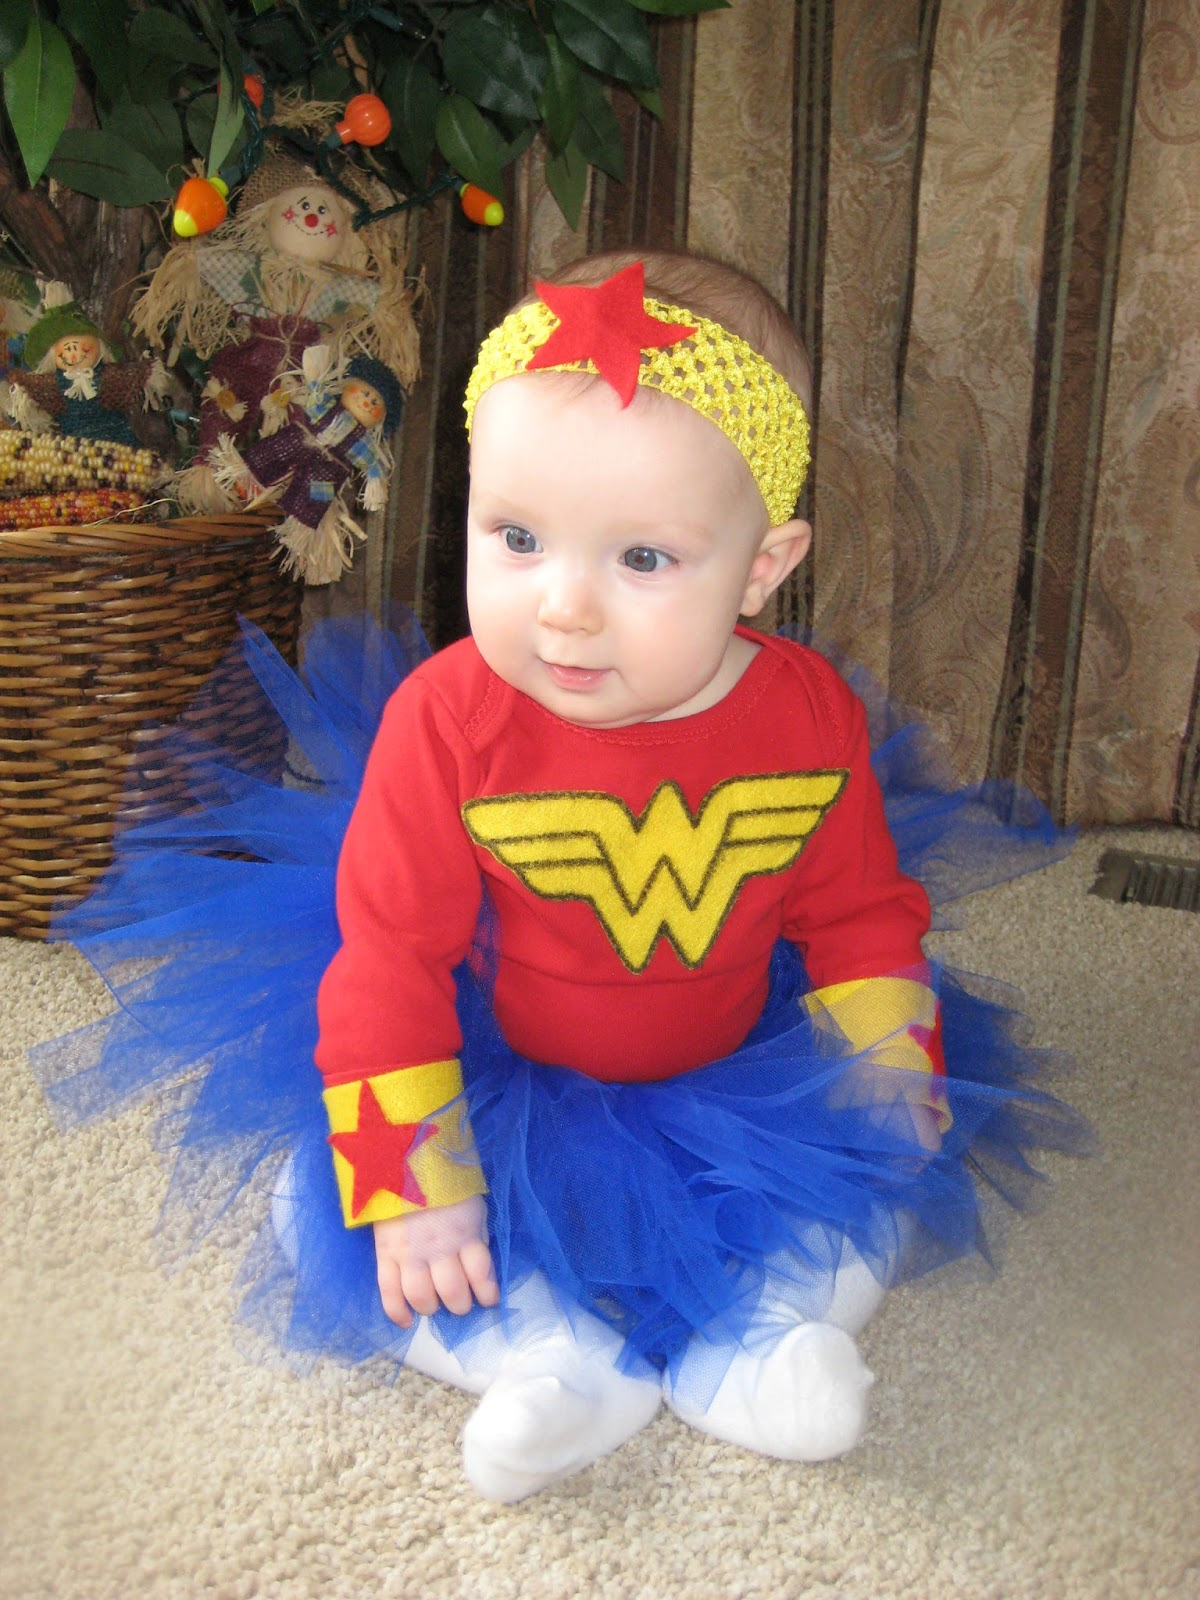 Superior Homemade Baby Girl And Boy Halloween Costumes 9 12 Months